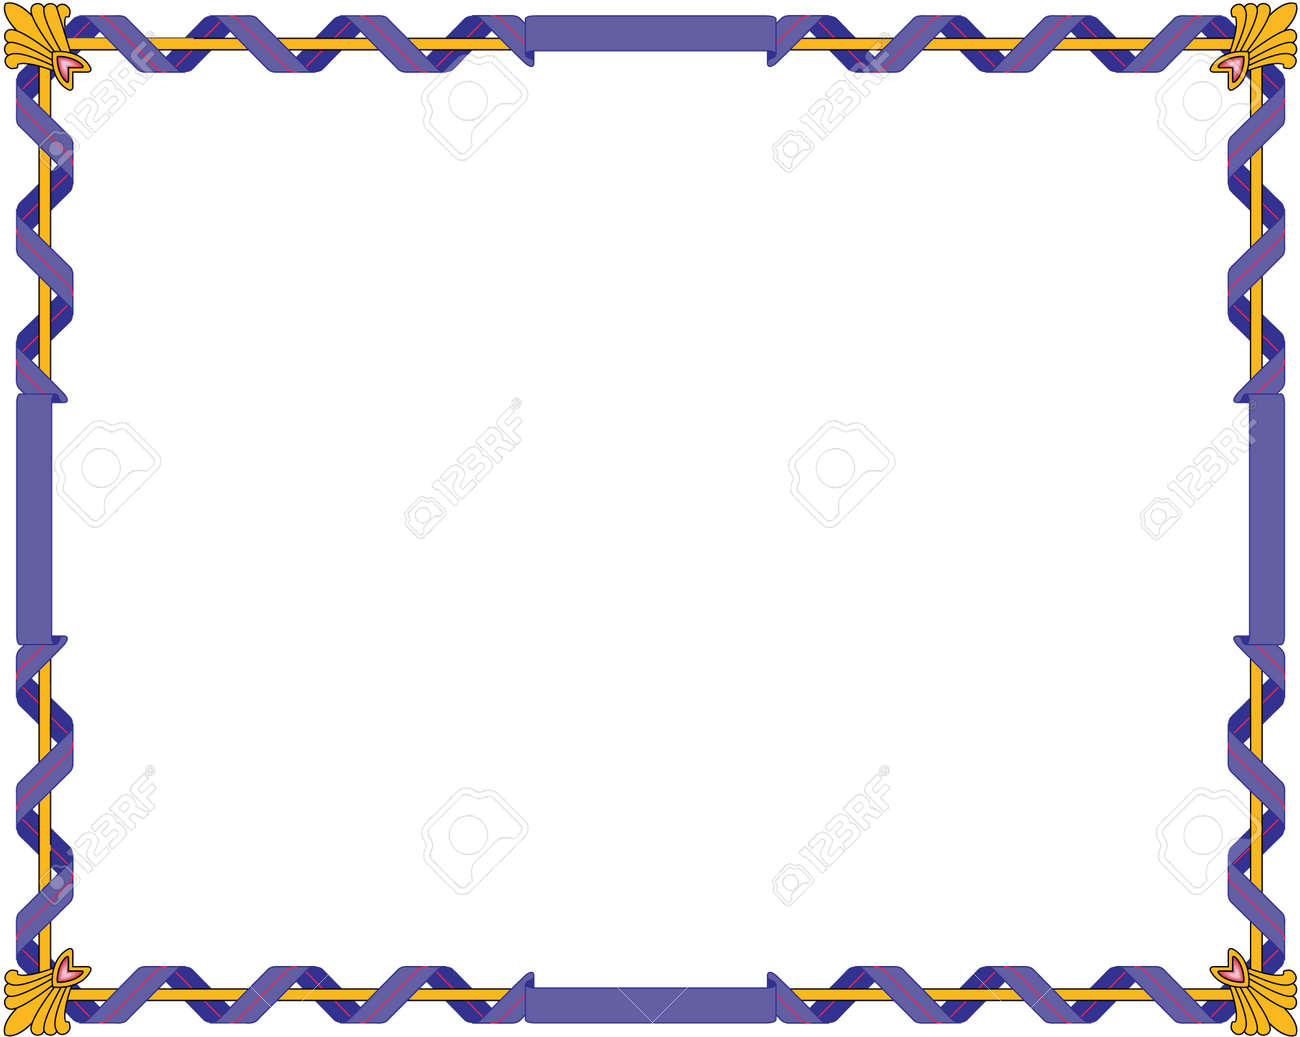 e0245597273 Regal Border Illustration. Royalty Free Cliparts